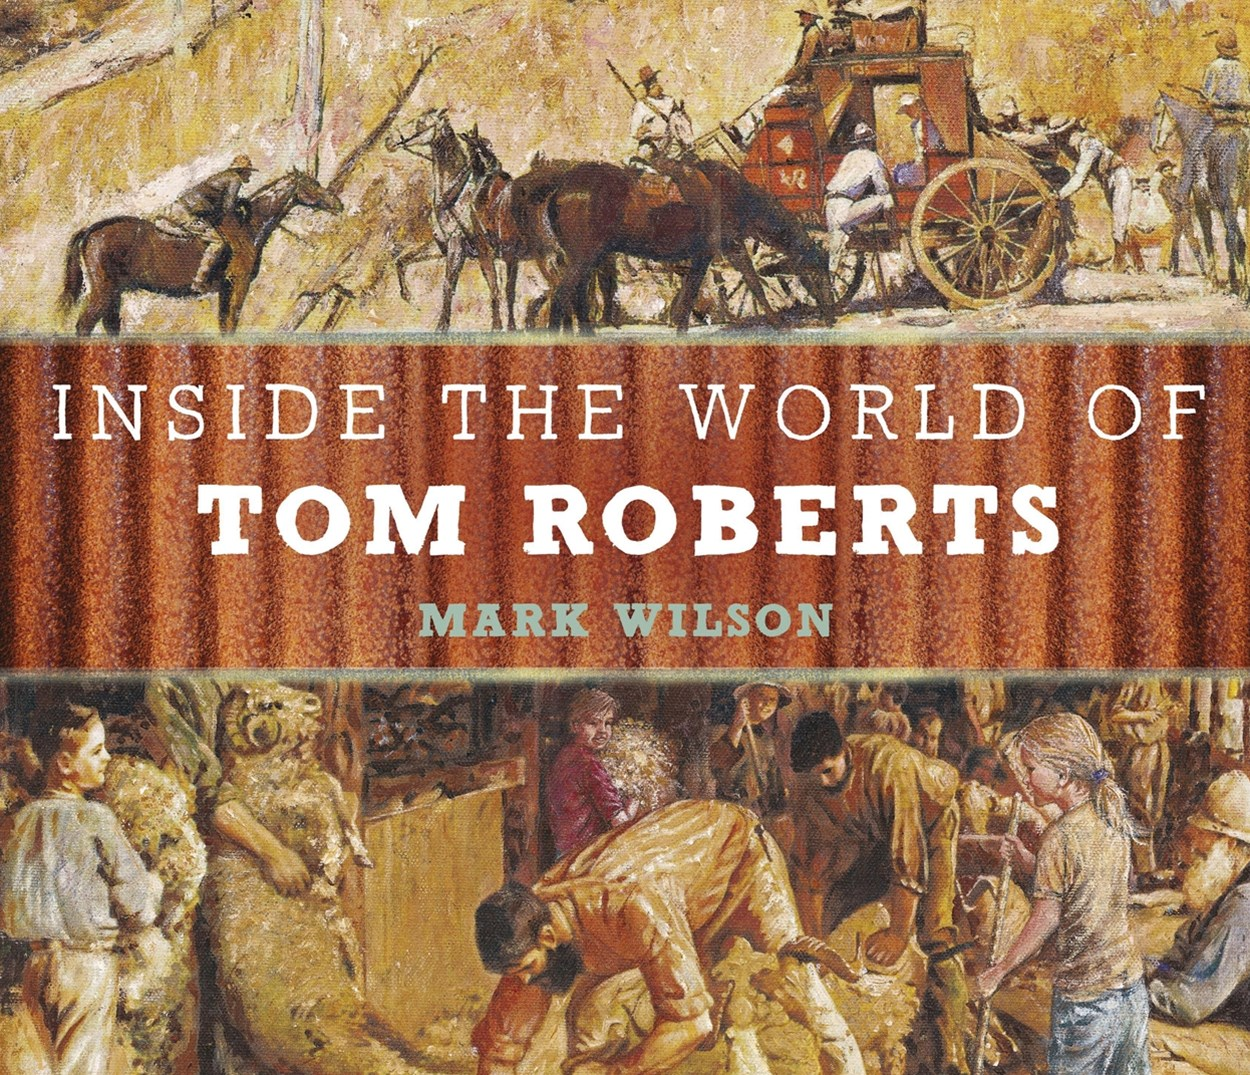 Inside the World of Tom Roberts: A Ben and Gracie Art Adventure